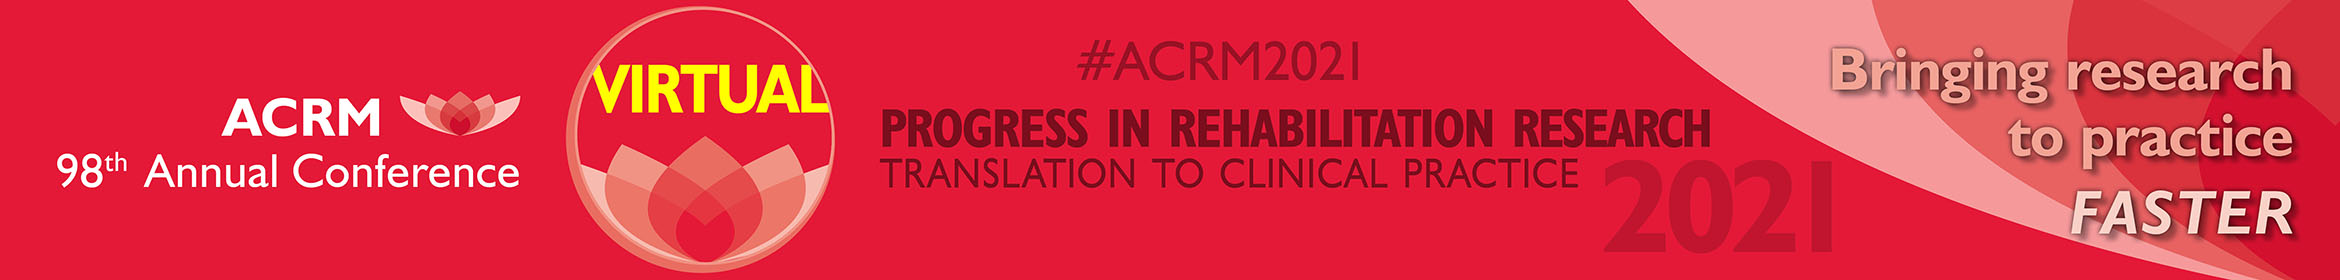 ACRM 98th Annual VIRTUAL Conference Main banner